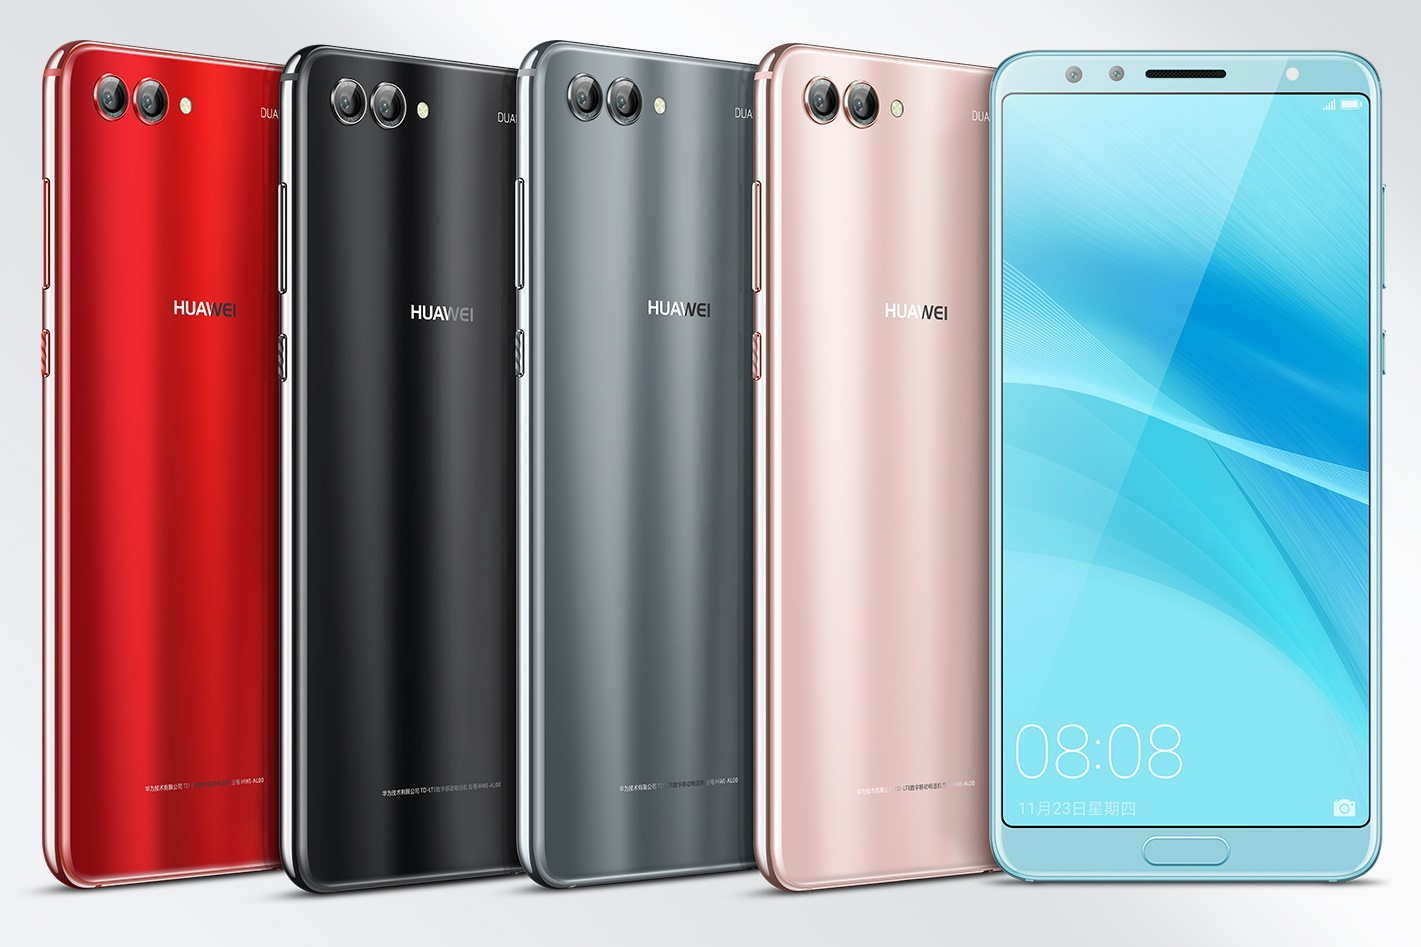 Android 8.0 Oreo update now rolling out to Huawei Mate 9